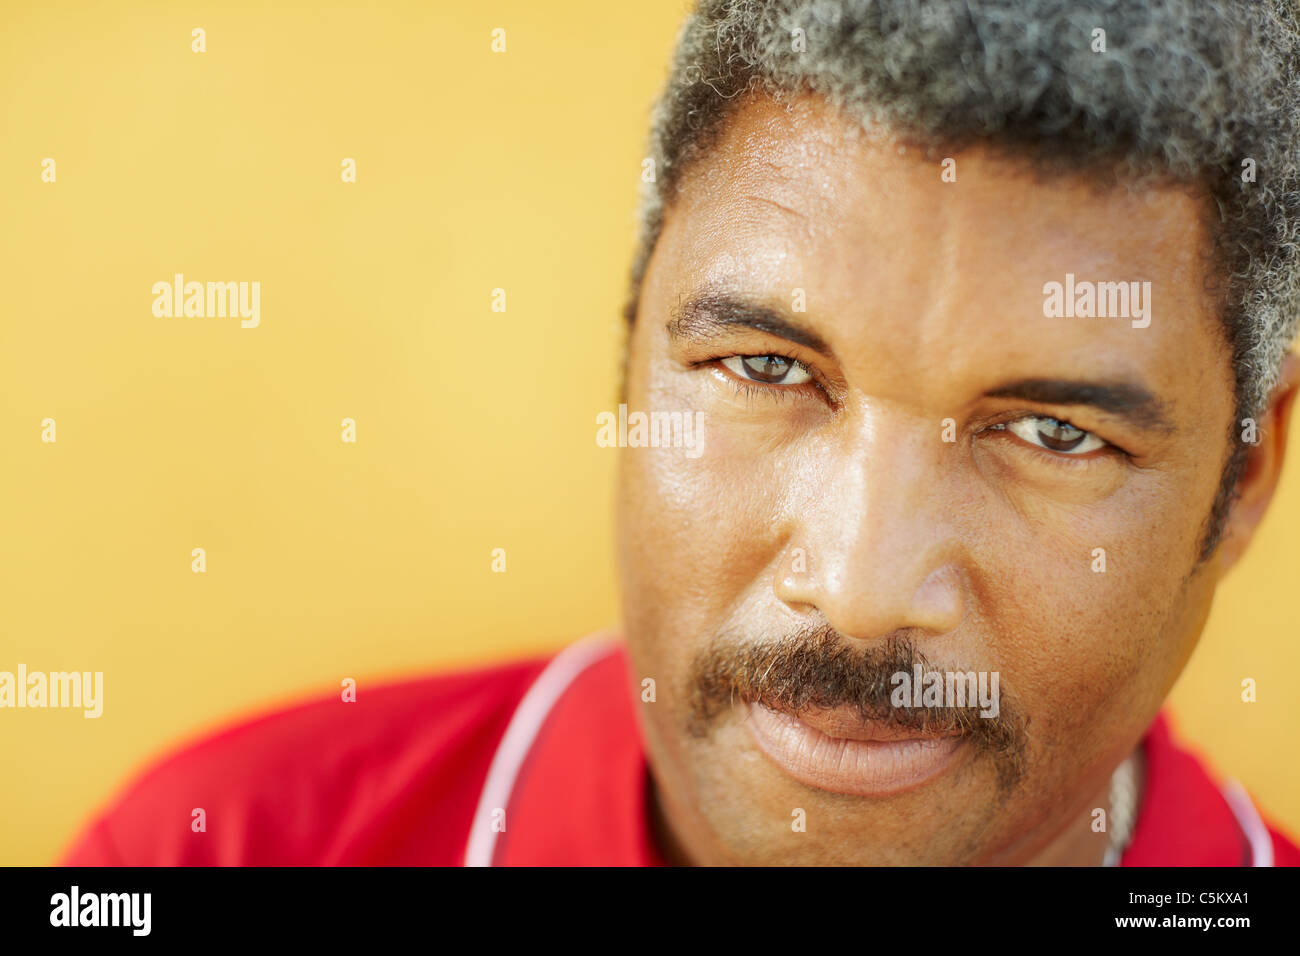 50 ans latin american man looking at camera with regard intense. Tête et épaules, copy space Photo Stock